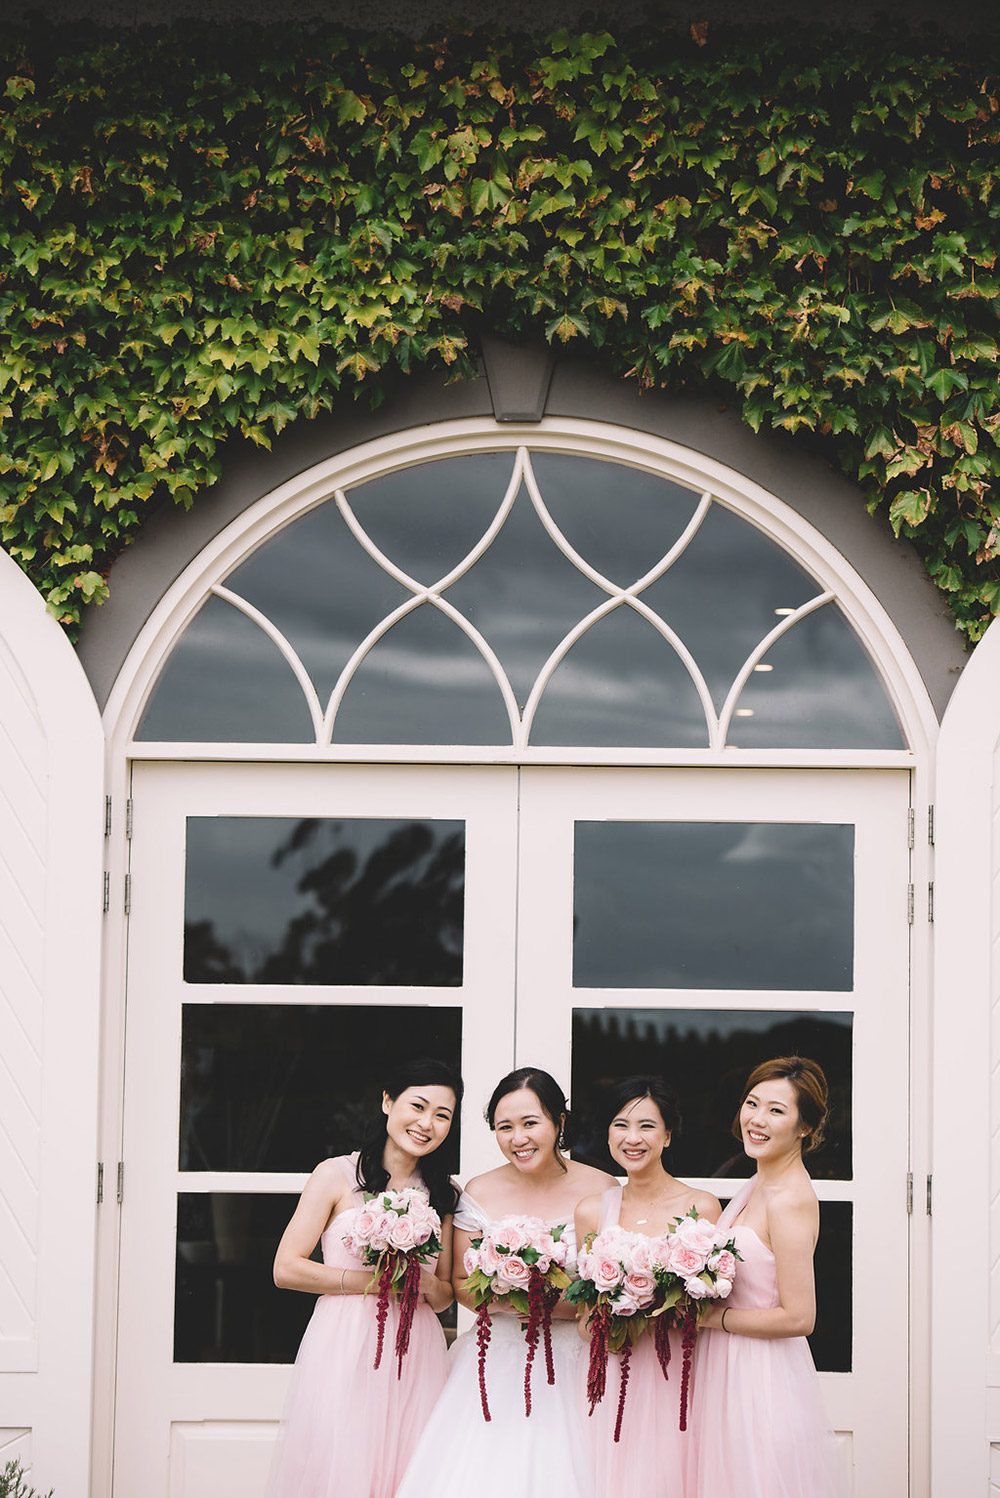 Dennis Yap Photography. www.theweddingnotebook.com